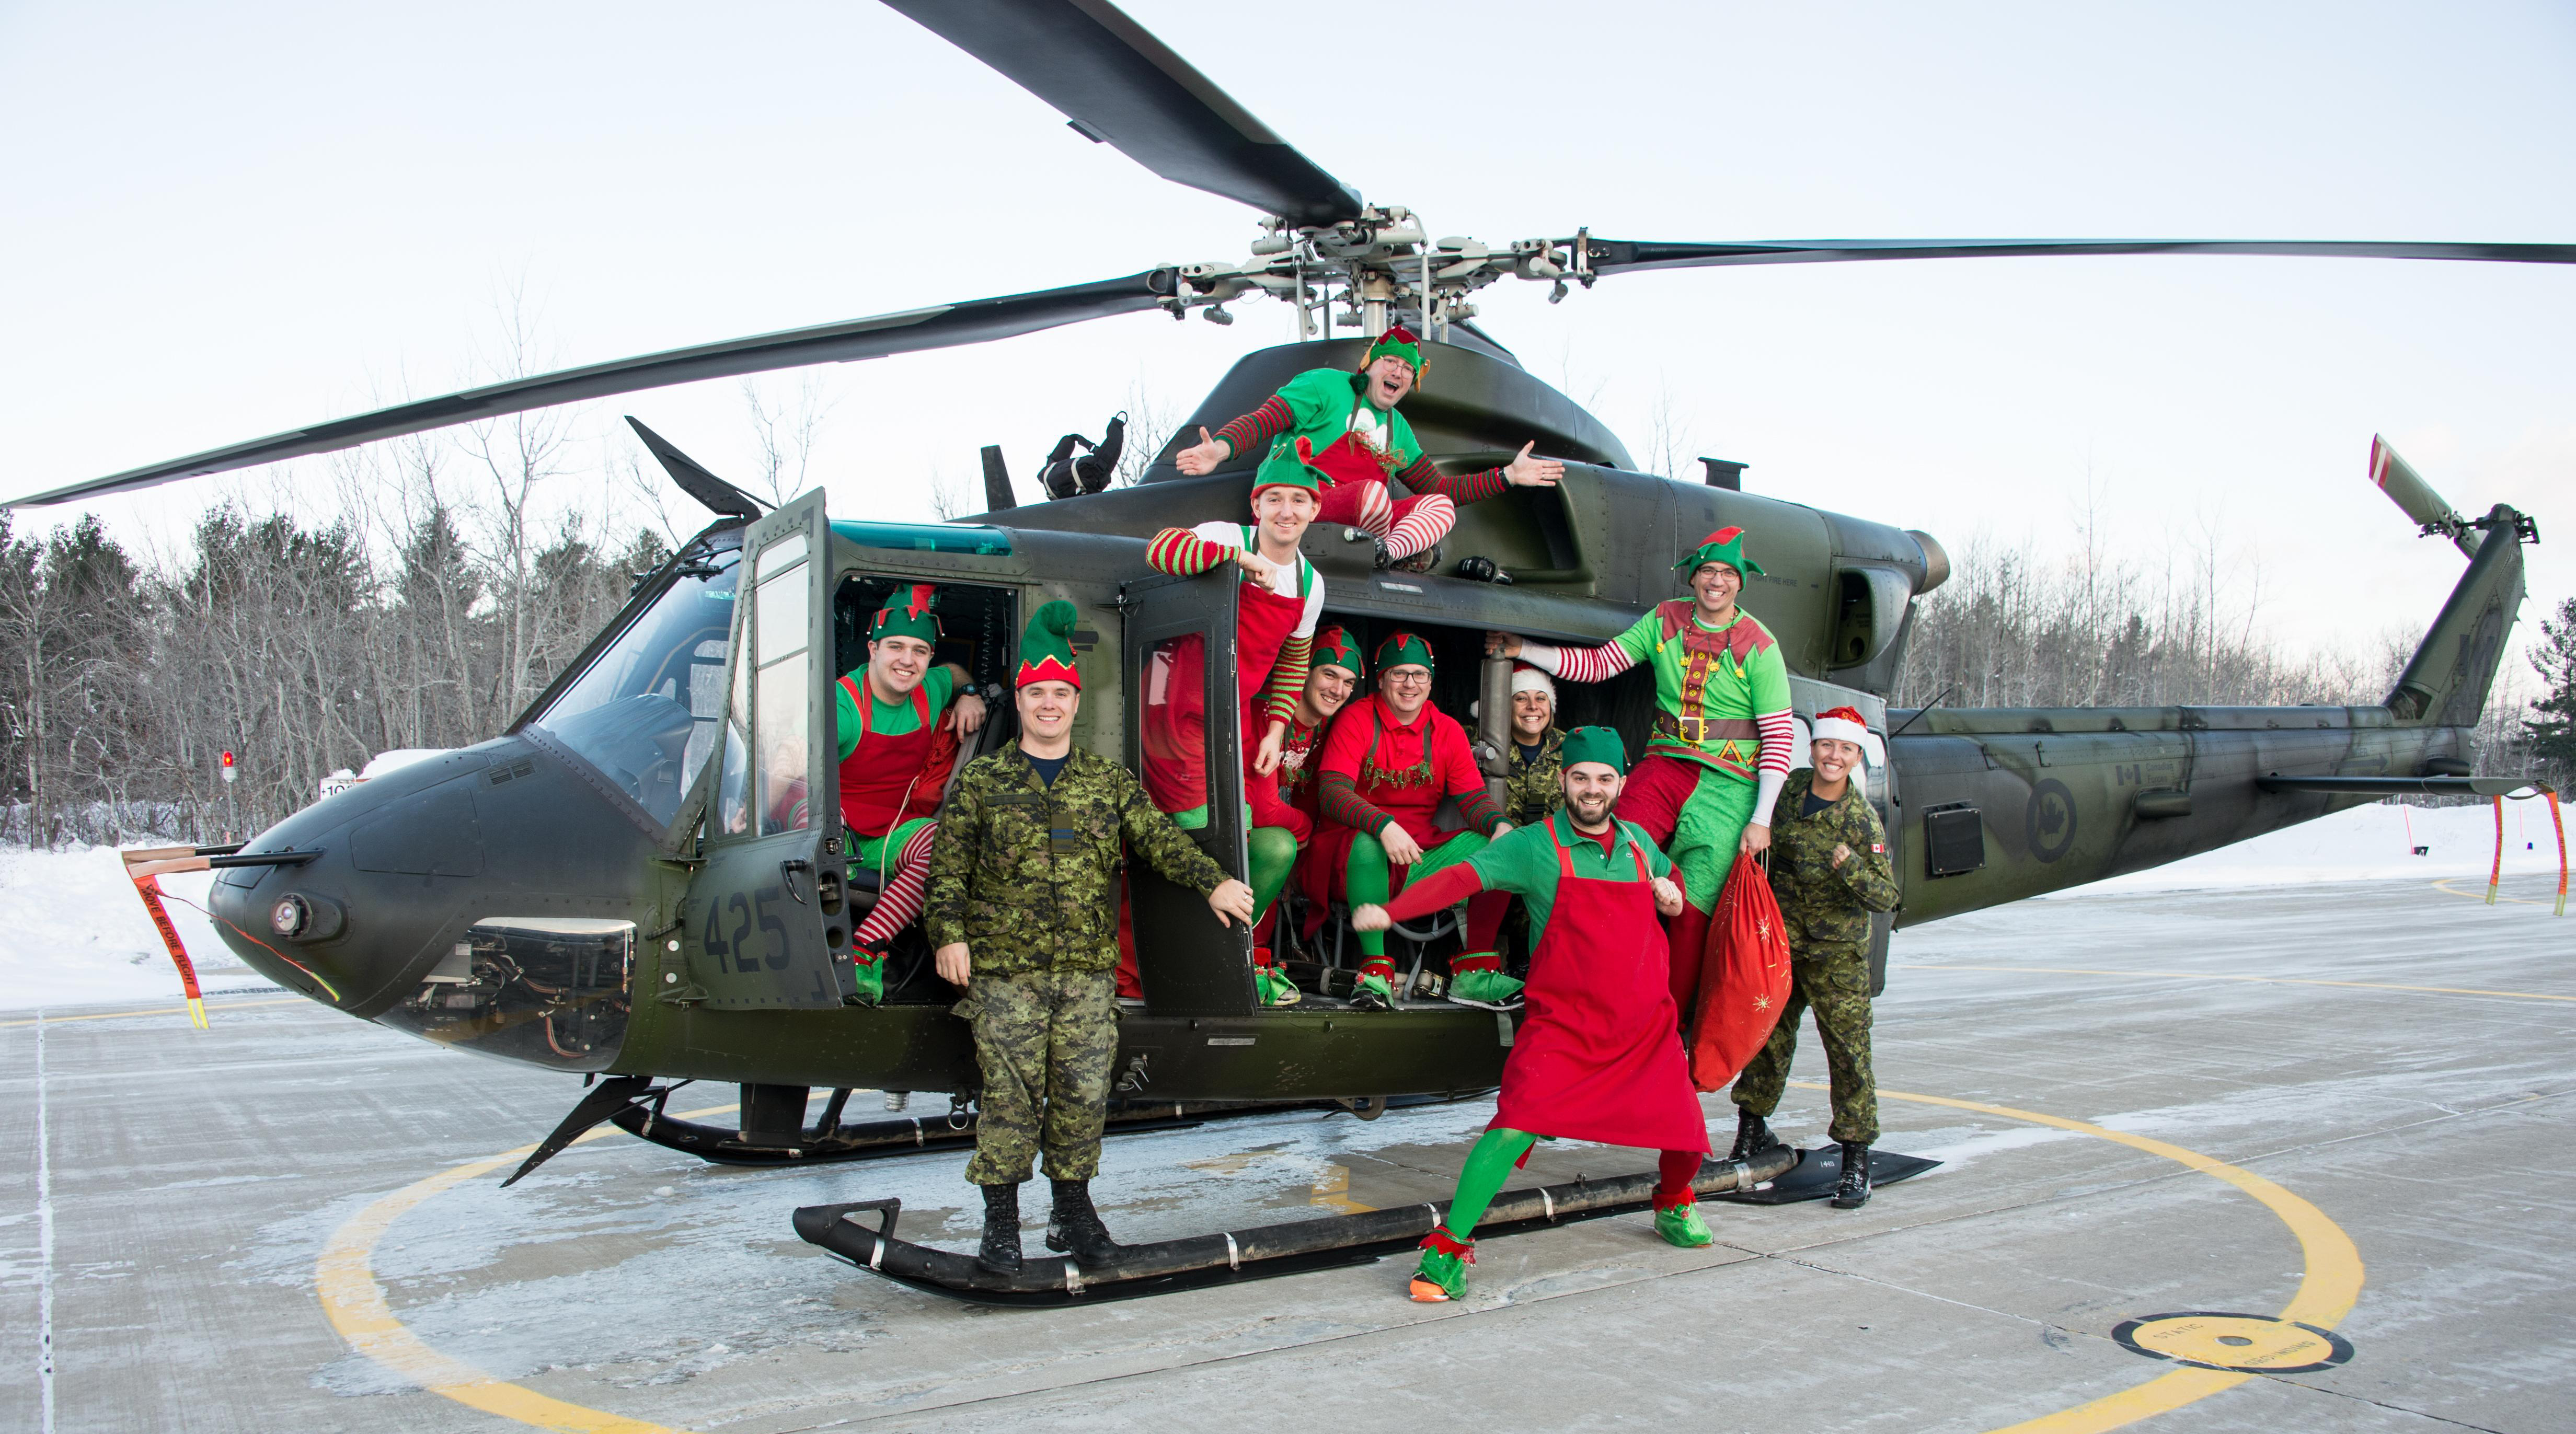 """Elves"" from 400 Tactical Helicopter Squadron, located at Canadian Forces Base Borden, Ontario, load a CH-146 Griffon helicopter with toys bound for the Hospital for Sick Children during Operation Ho Ho Ho on December 14, 2016. The initiative to bring holiday cheer to children who must be in SickKids Hospital over the Christmas season has been running for 13 years. From left to right are Aviator Paul Wilson, Captain Jeffery Pollard, Ordinary Seaman Christopher Anderson, Corporal Martin Hamel, Aviator William Rittershofer, Master Corporal Jason Merner, Major Laura Laycock, Aviator Daniel Rodrigues, Corporal Jesse MacIlroy and Captain Karmen Hill. PHOTO: Corporal Lindsay Neifer, CB18-2016-0627-003"